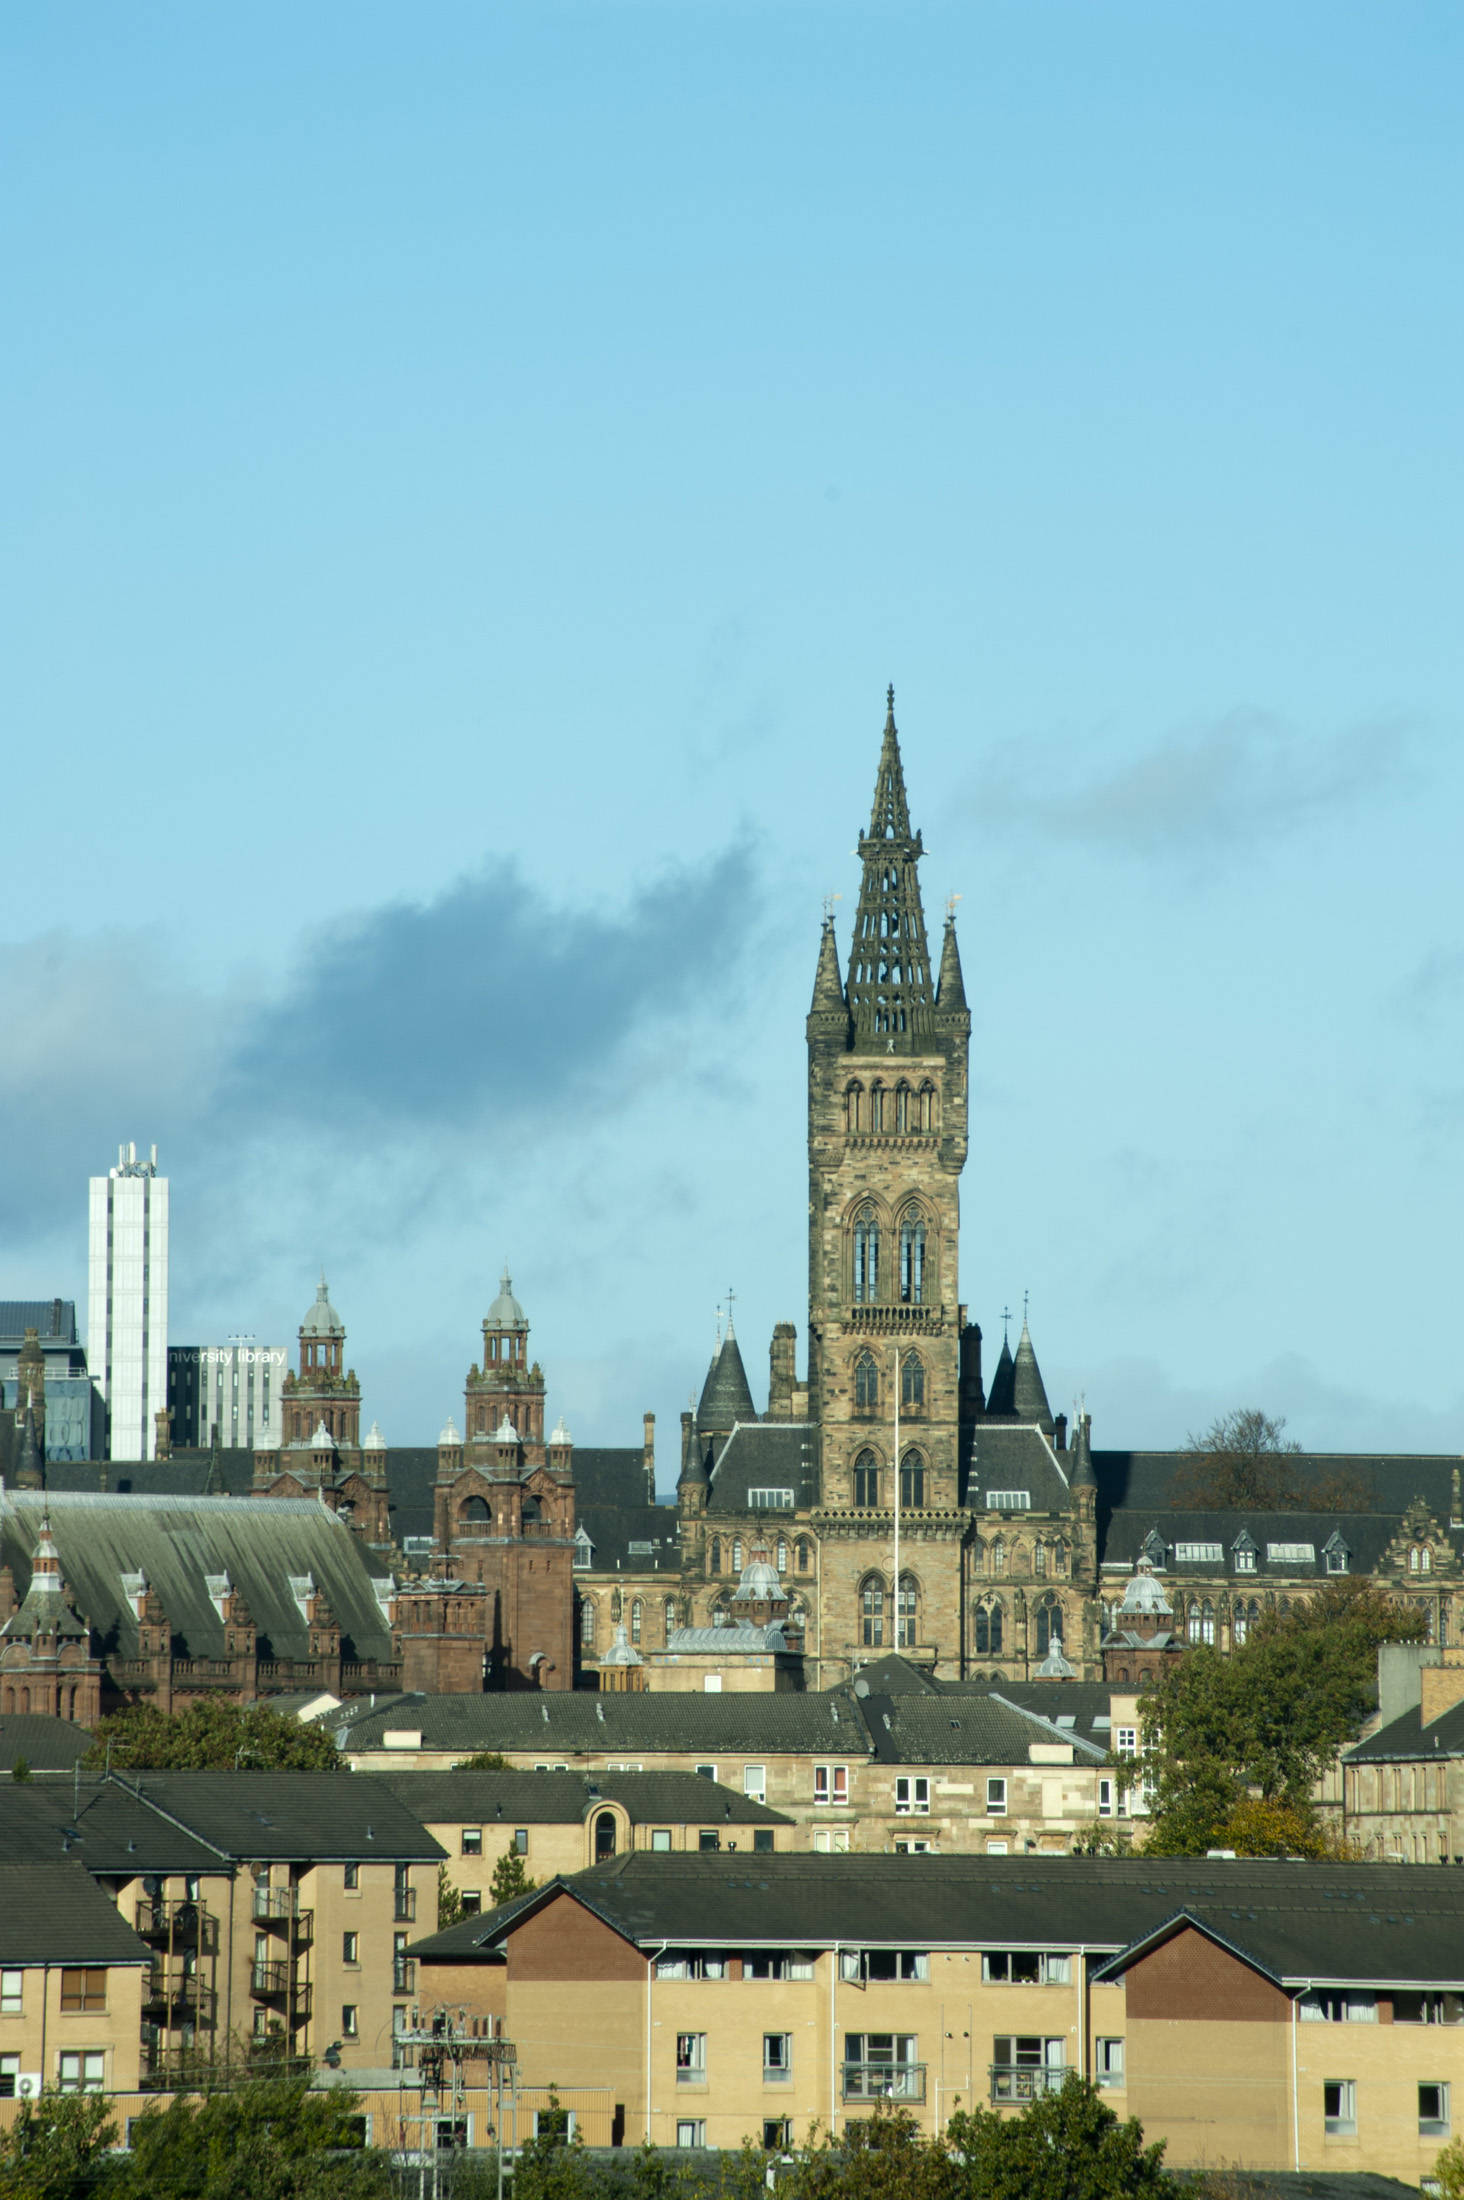 Scenic view of the University of Glasgow buildings with the landmark Gothic Bell tower dominating the skyline